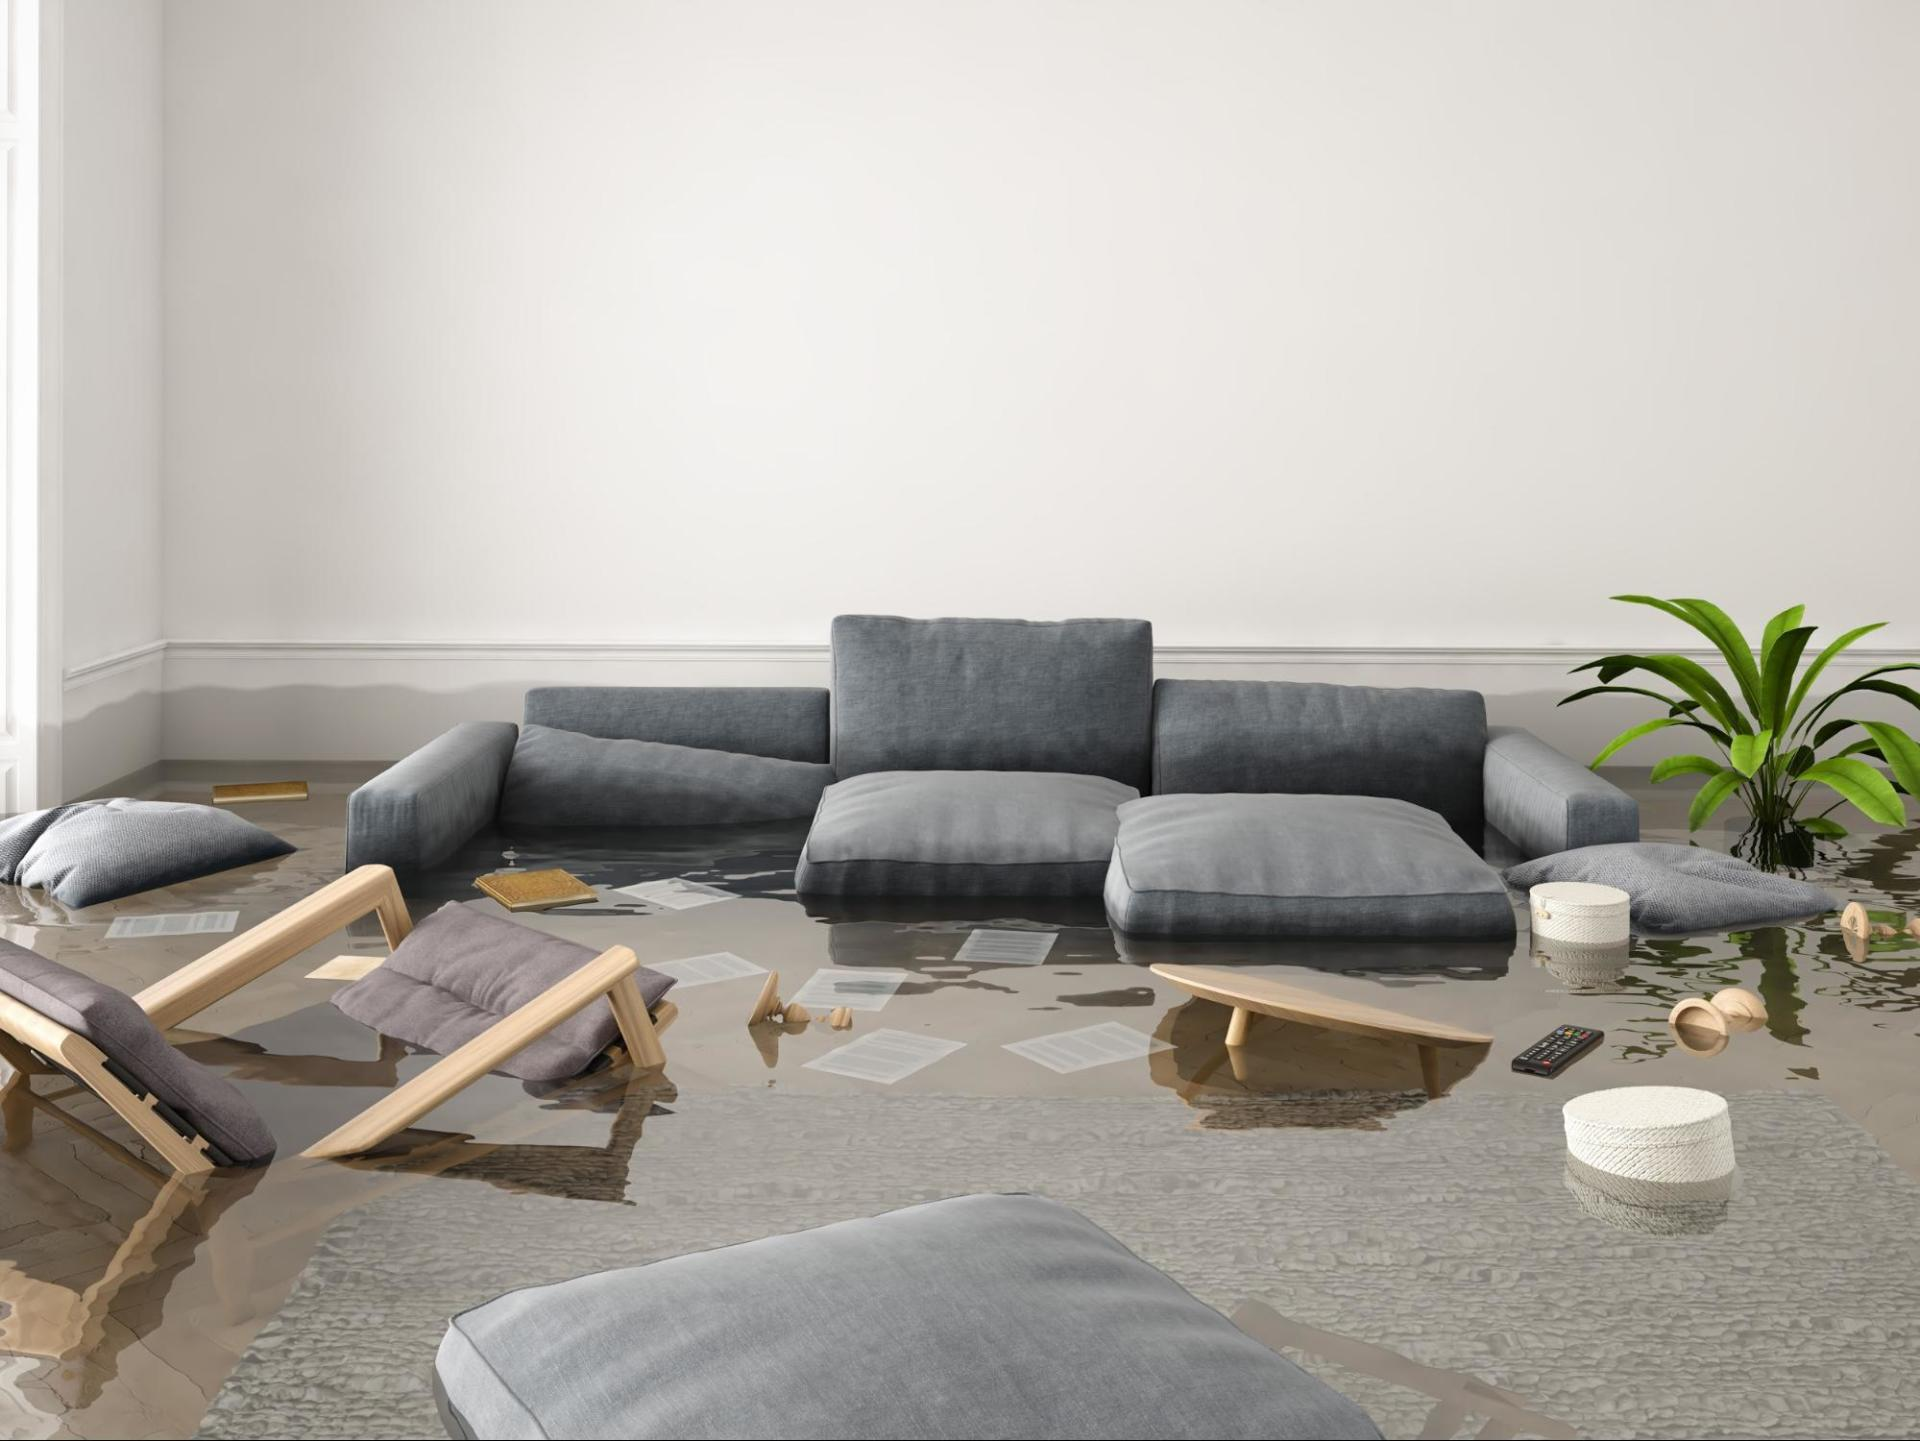 A flooded house filled with furniture and water